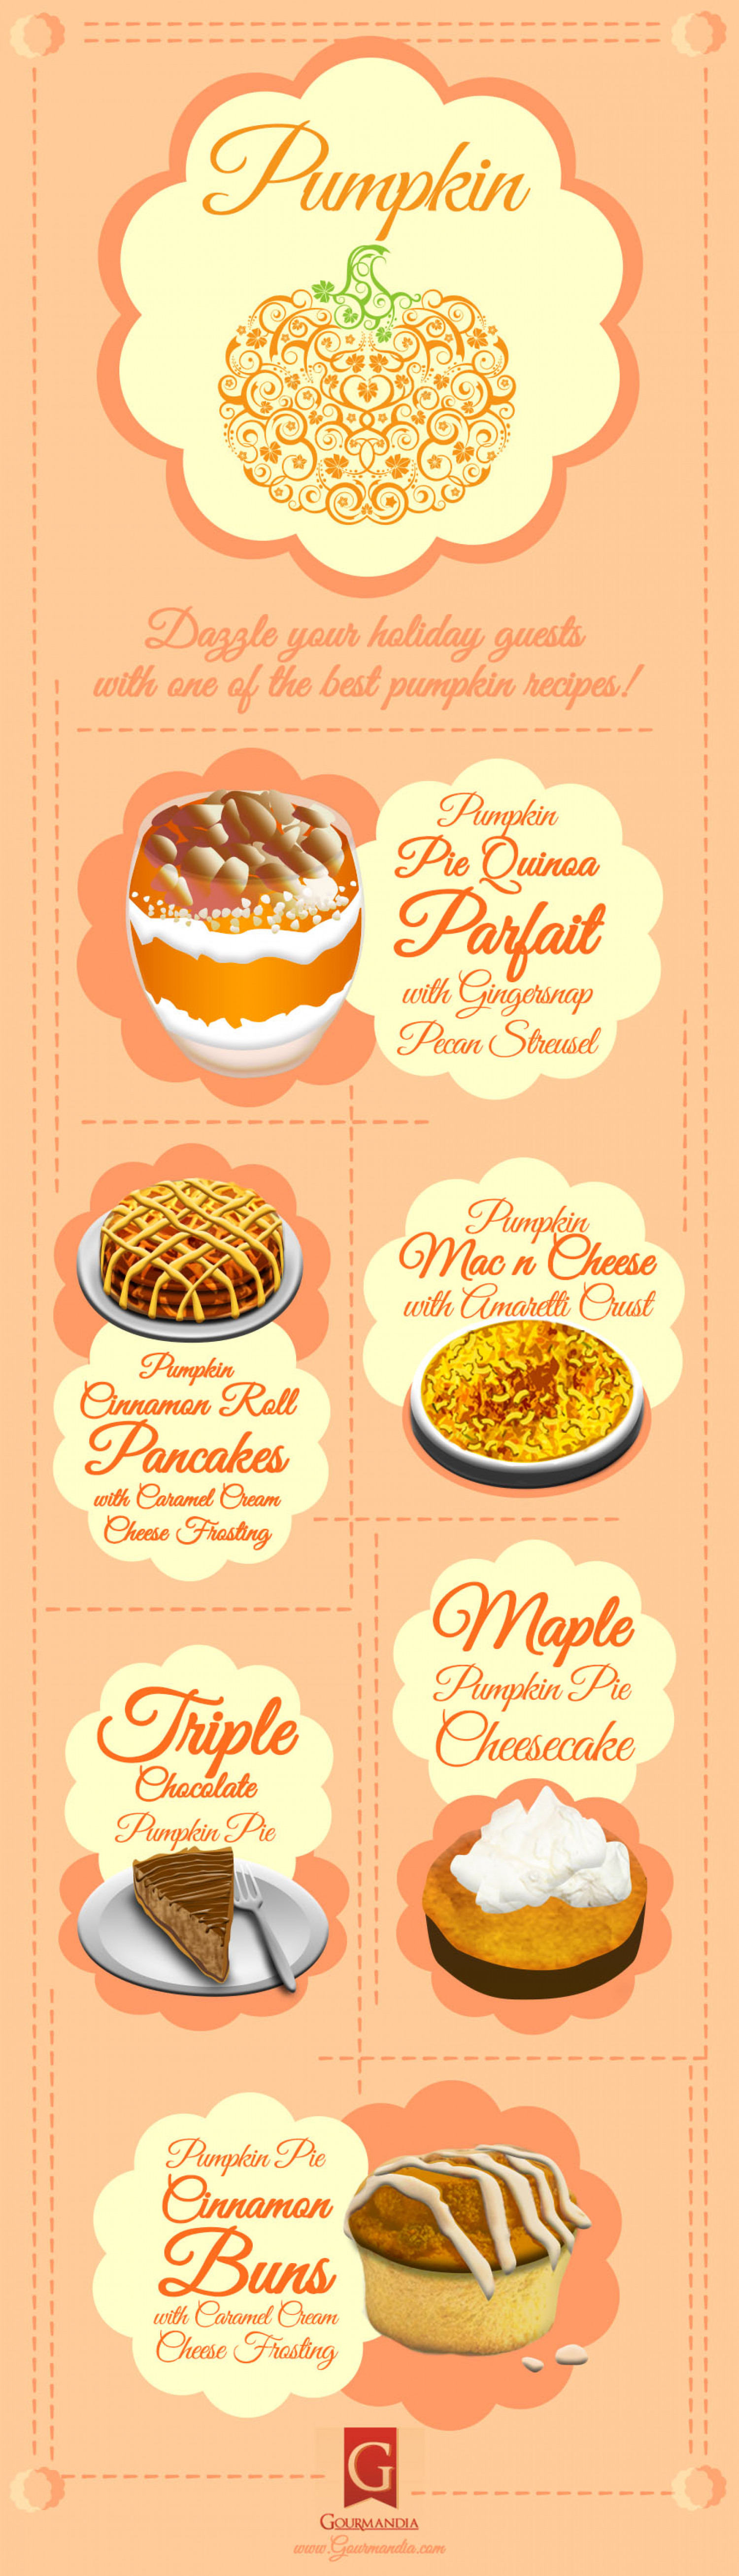 Pumpkin Recipes to Try Infographic